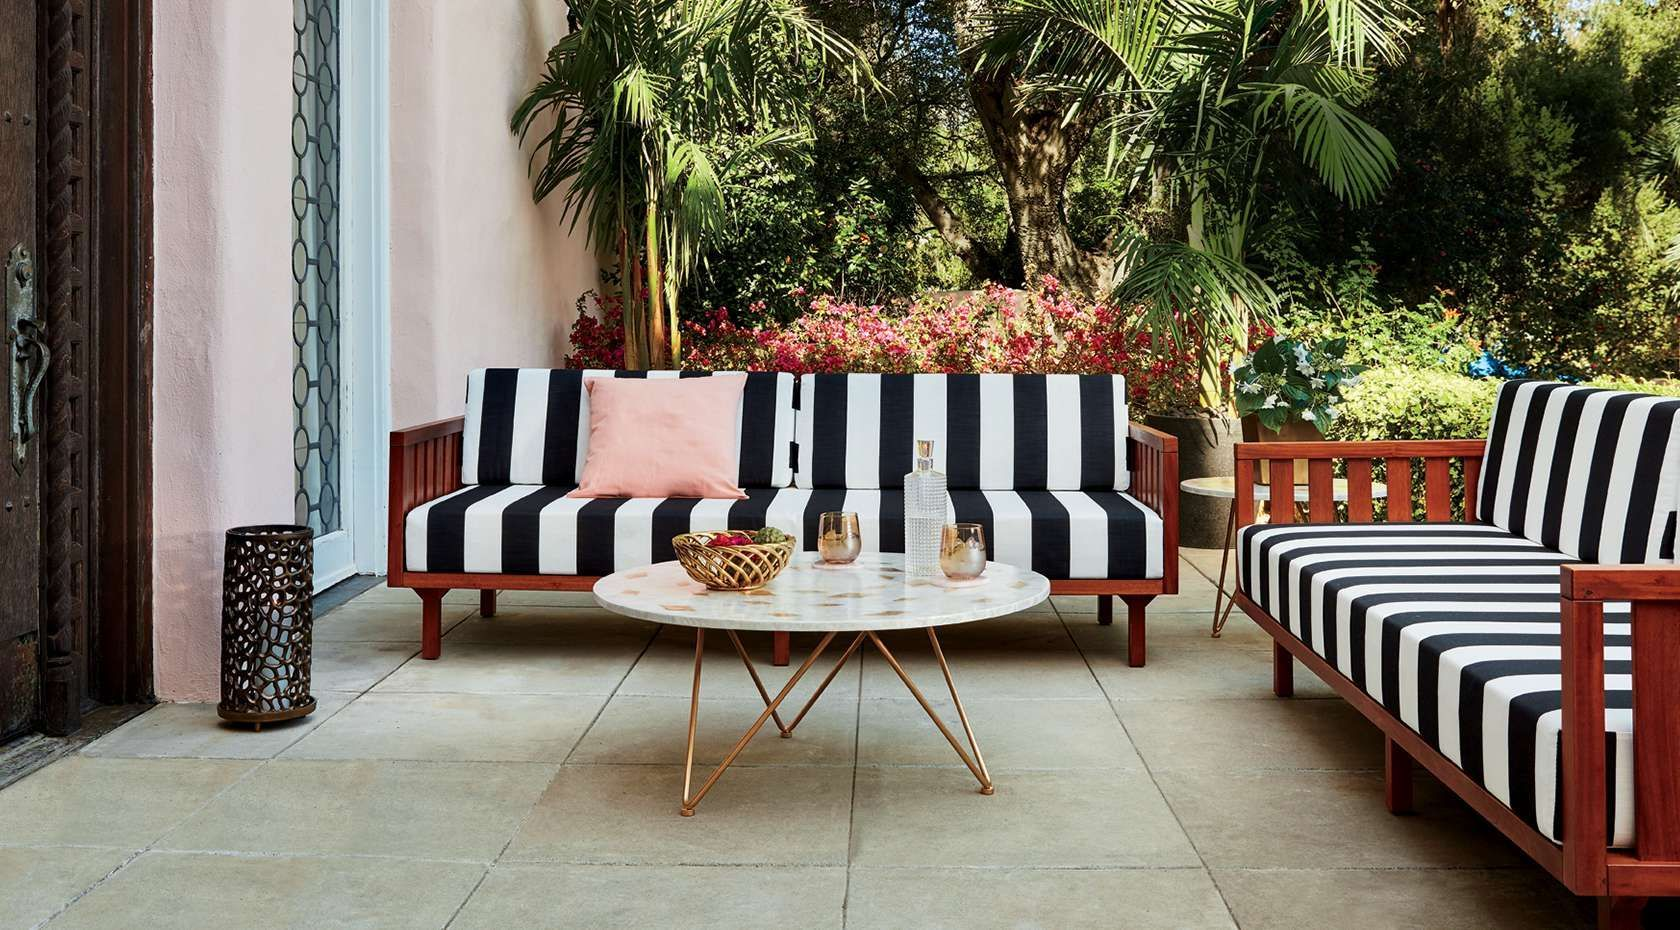 Make a statement with modern patio furniture and décor from cb2 browse outdoor furniture